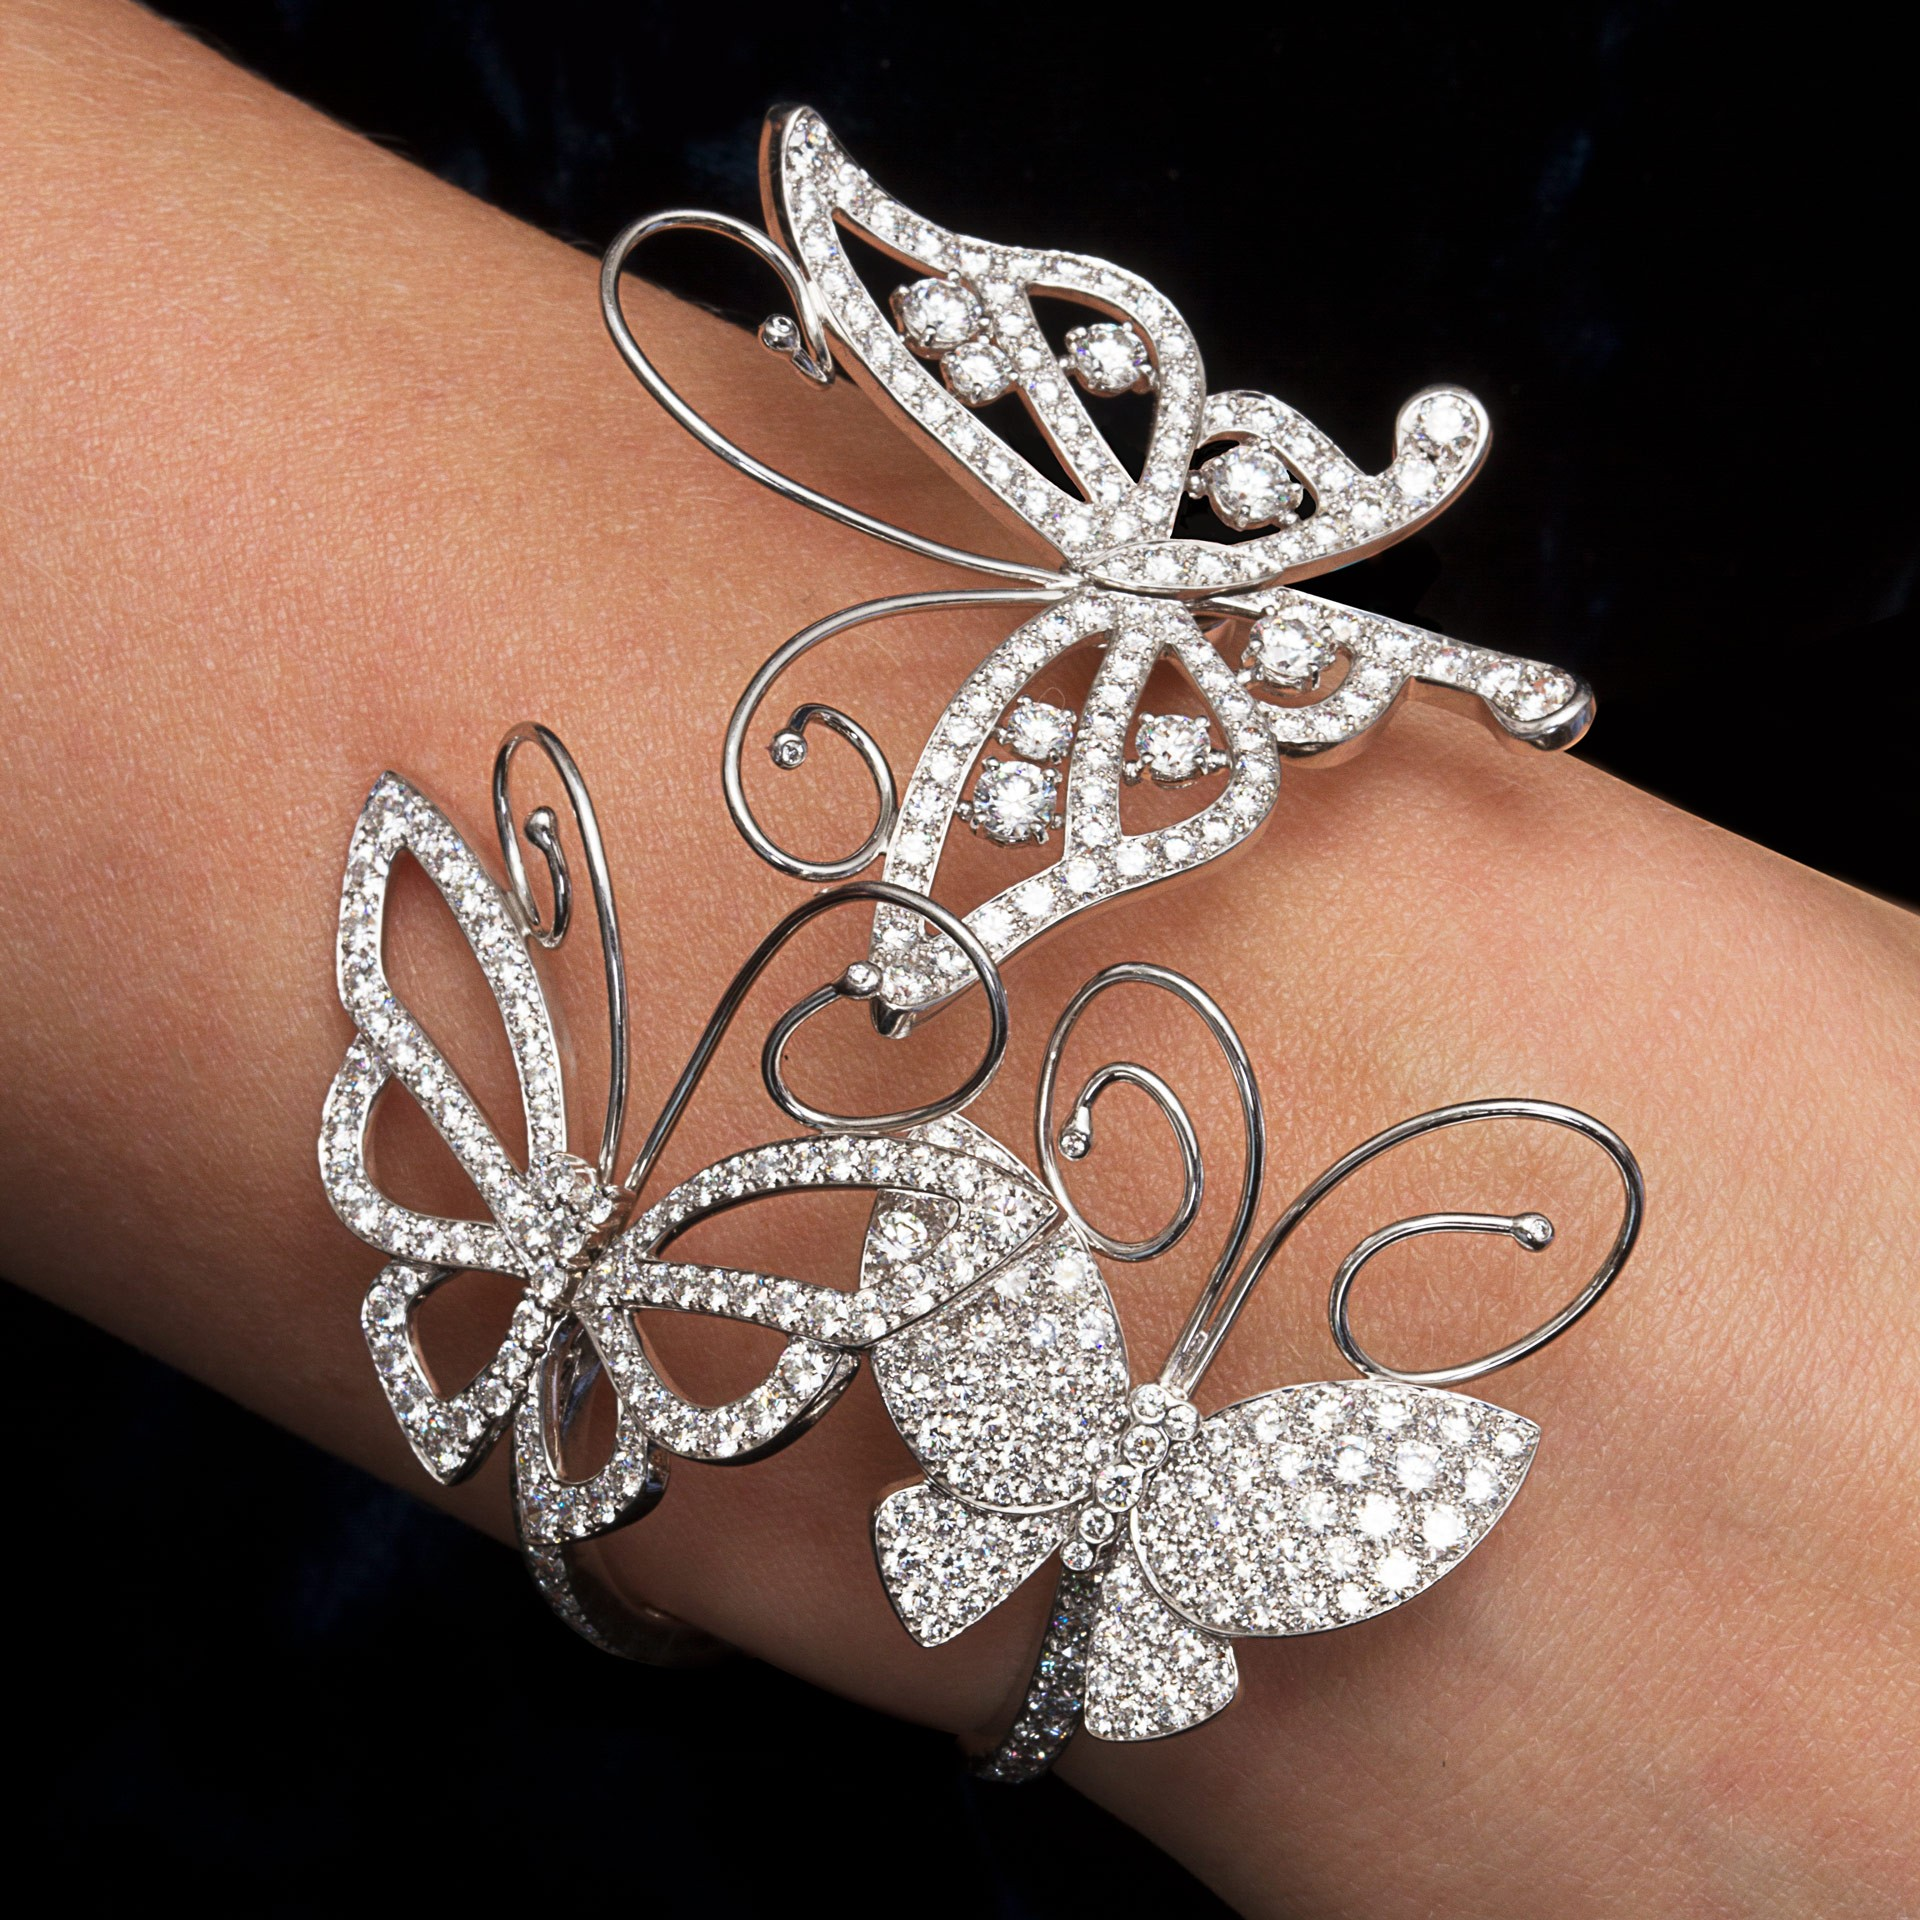 Butterfly Bracelet Cuff by Van Cleef & Arpels Jewelry